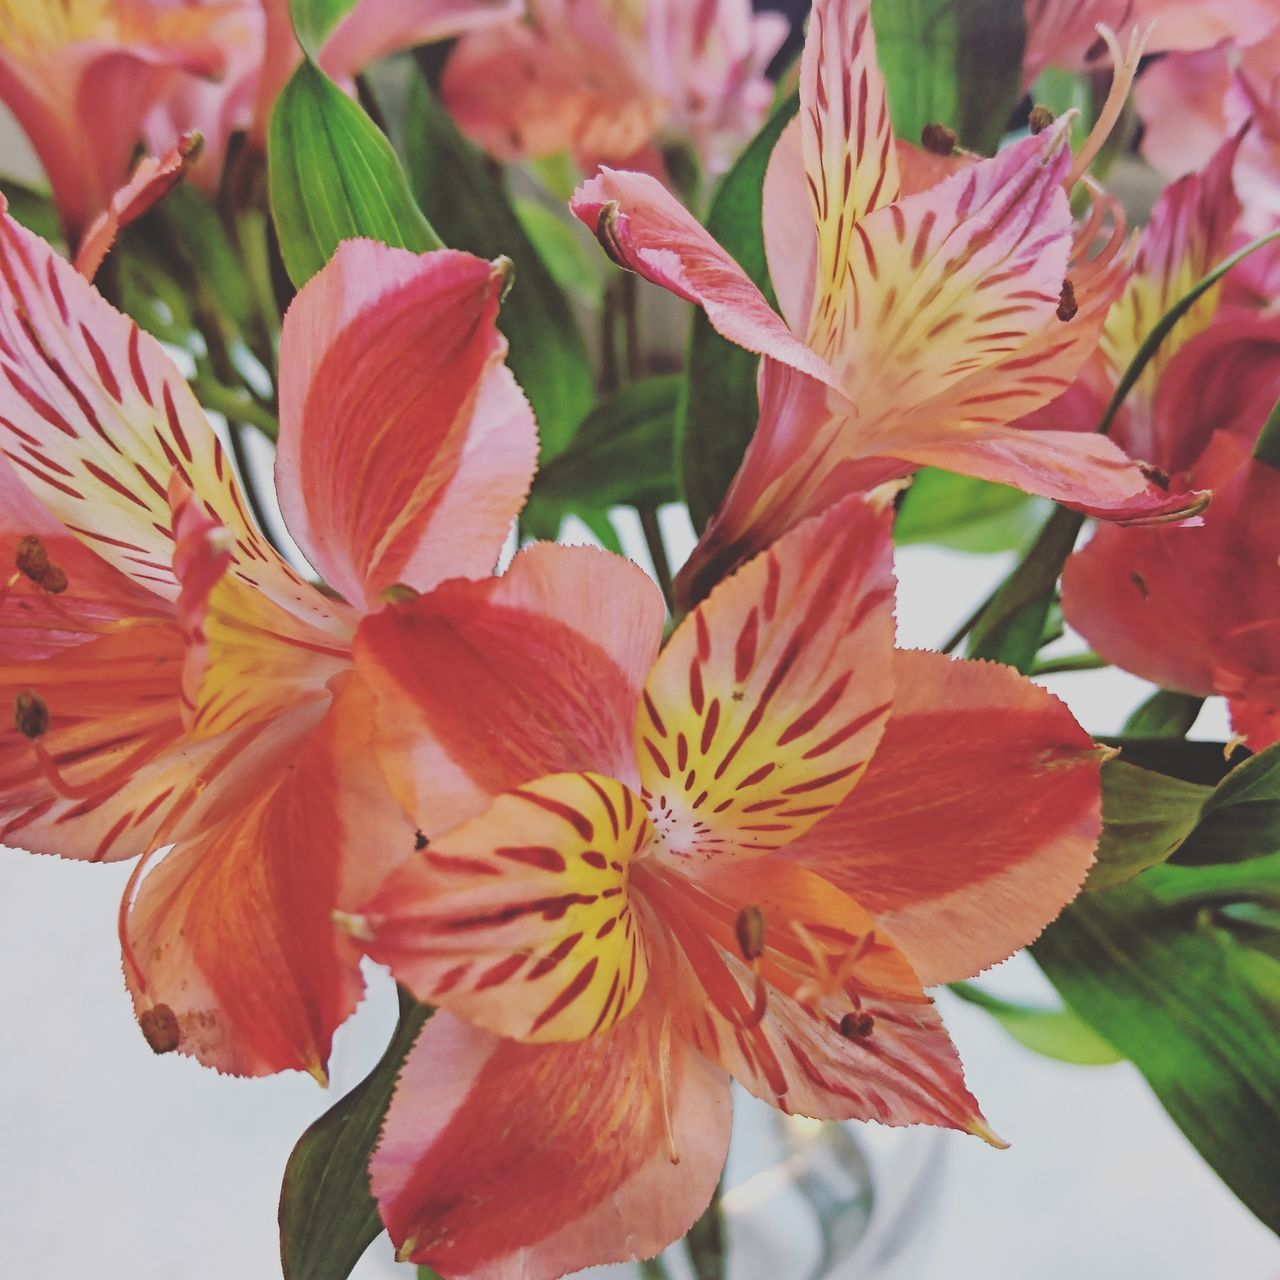 Beauty In Nature Nature Flower No People Fragility Close-up Petal Flower Head Plant Growth Freshness Pink Color Springtime Day Day Lily Pistil